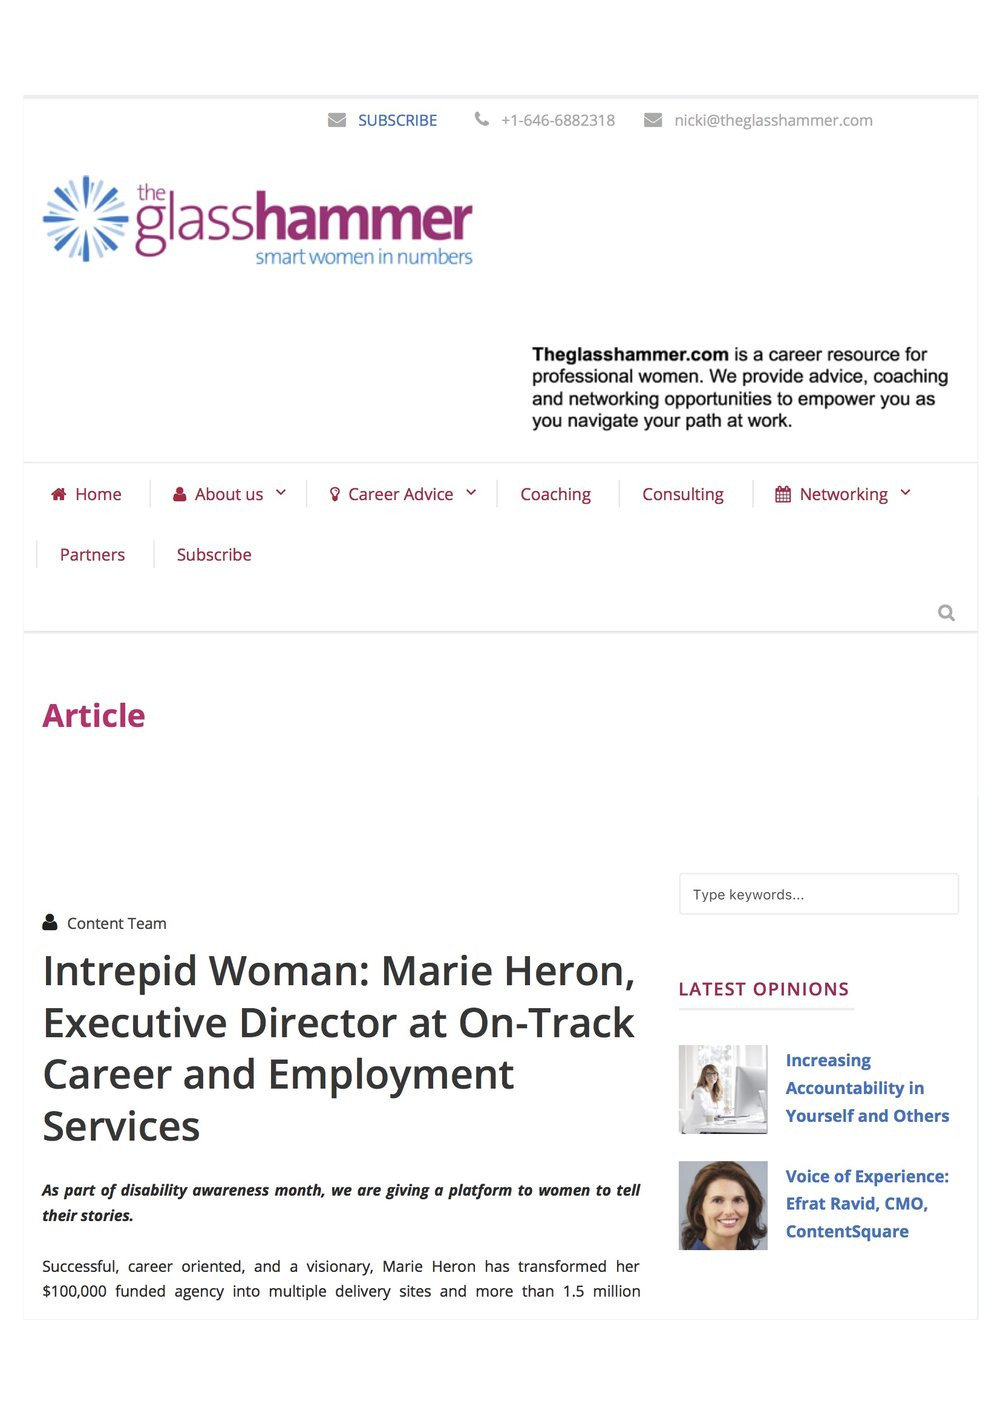 The Glass Hammer_Marie Heron, Executive Director at On-Track Career_Oct 2017.jpg